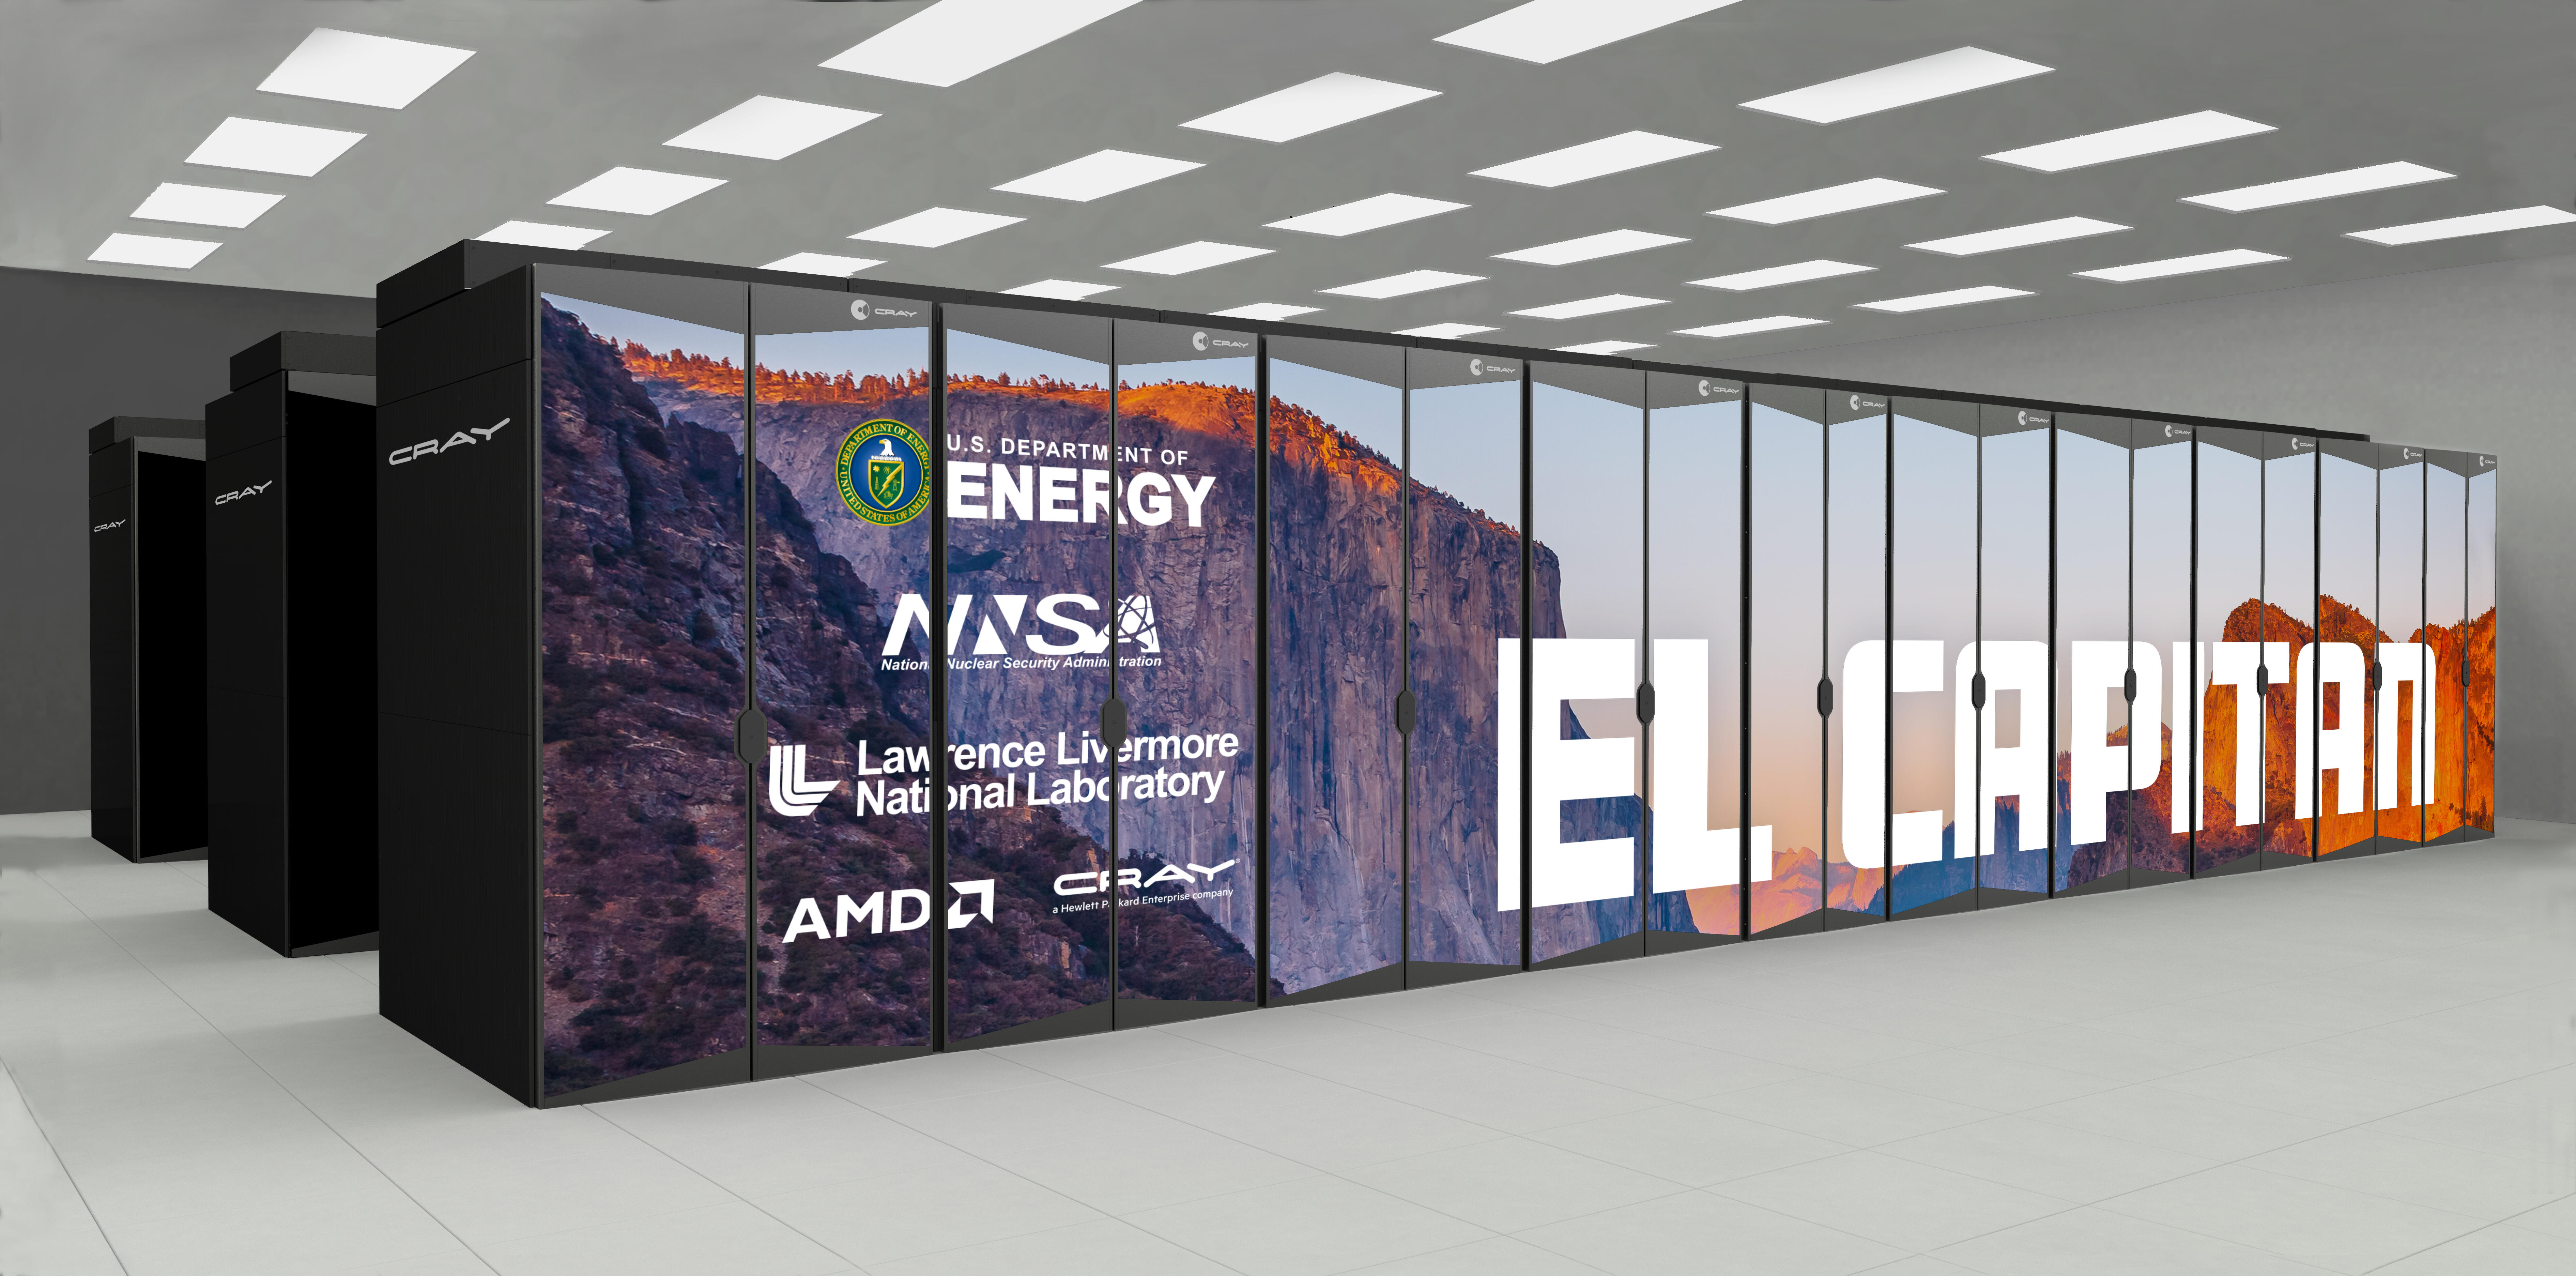 The El Capitan supercomputer, built by HPE's Cray supercomputing division with processors from AMD, should get to work at Lawrence Livermore National Laboratory in 2023.